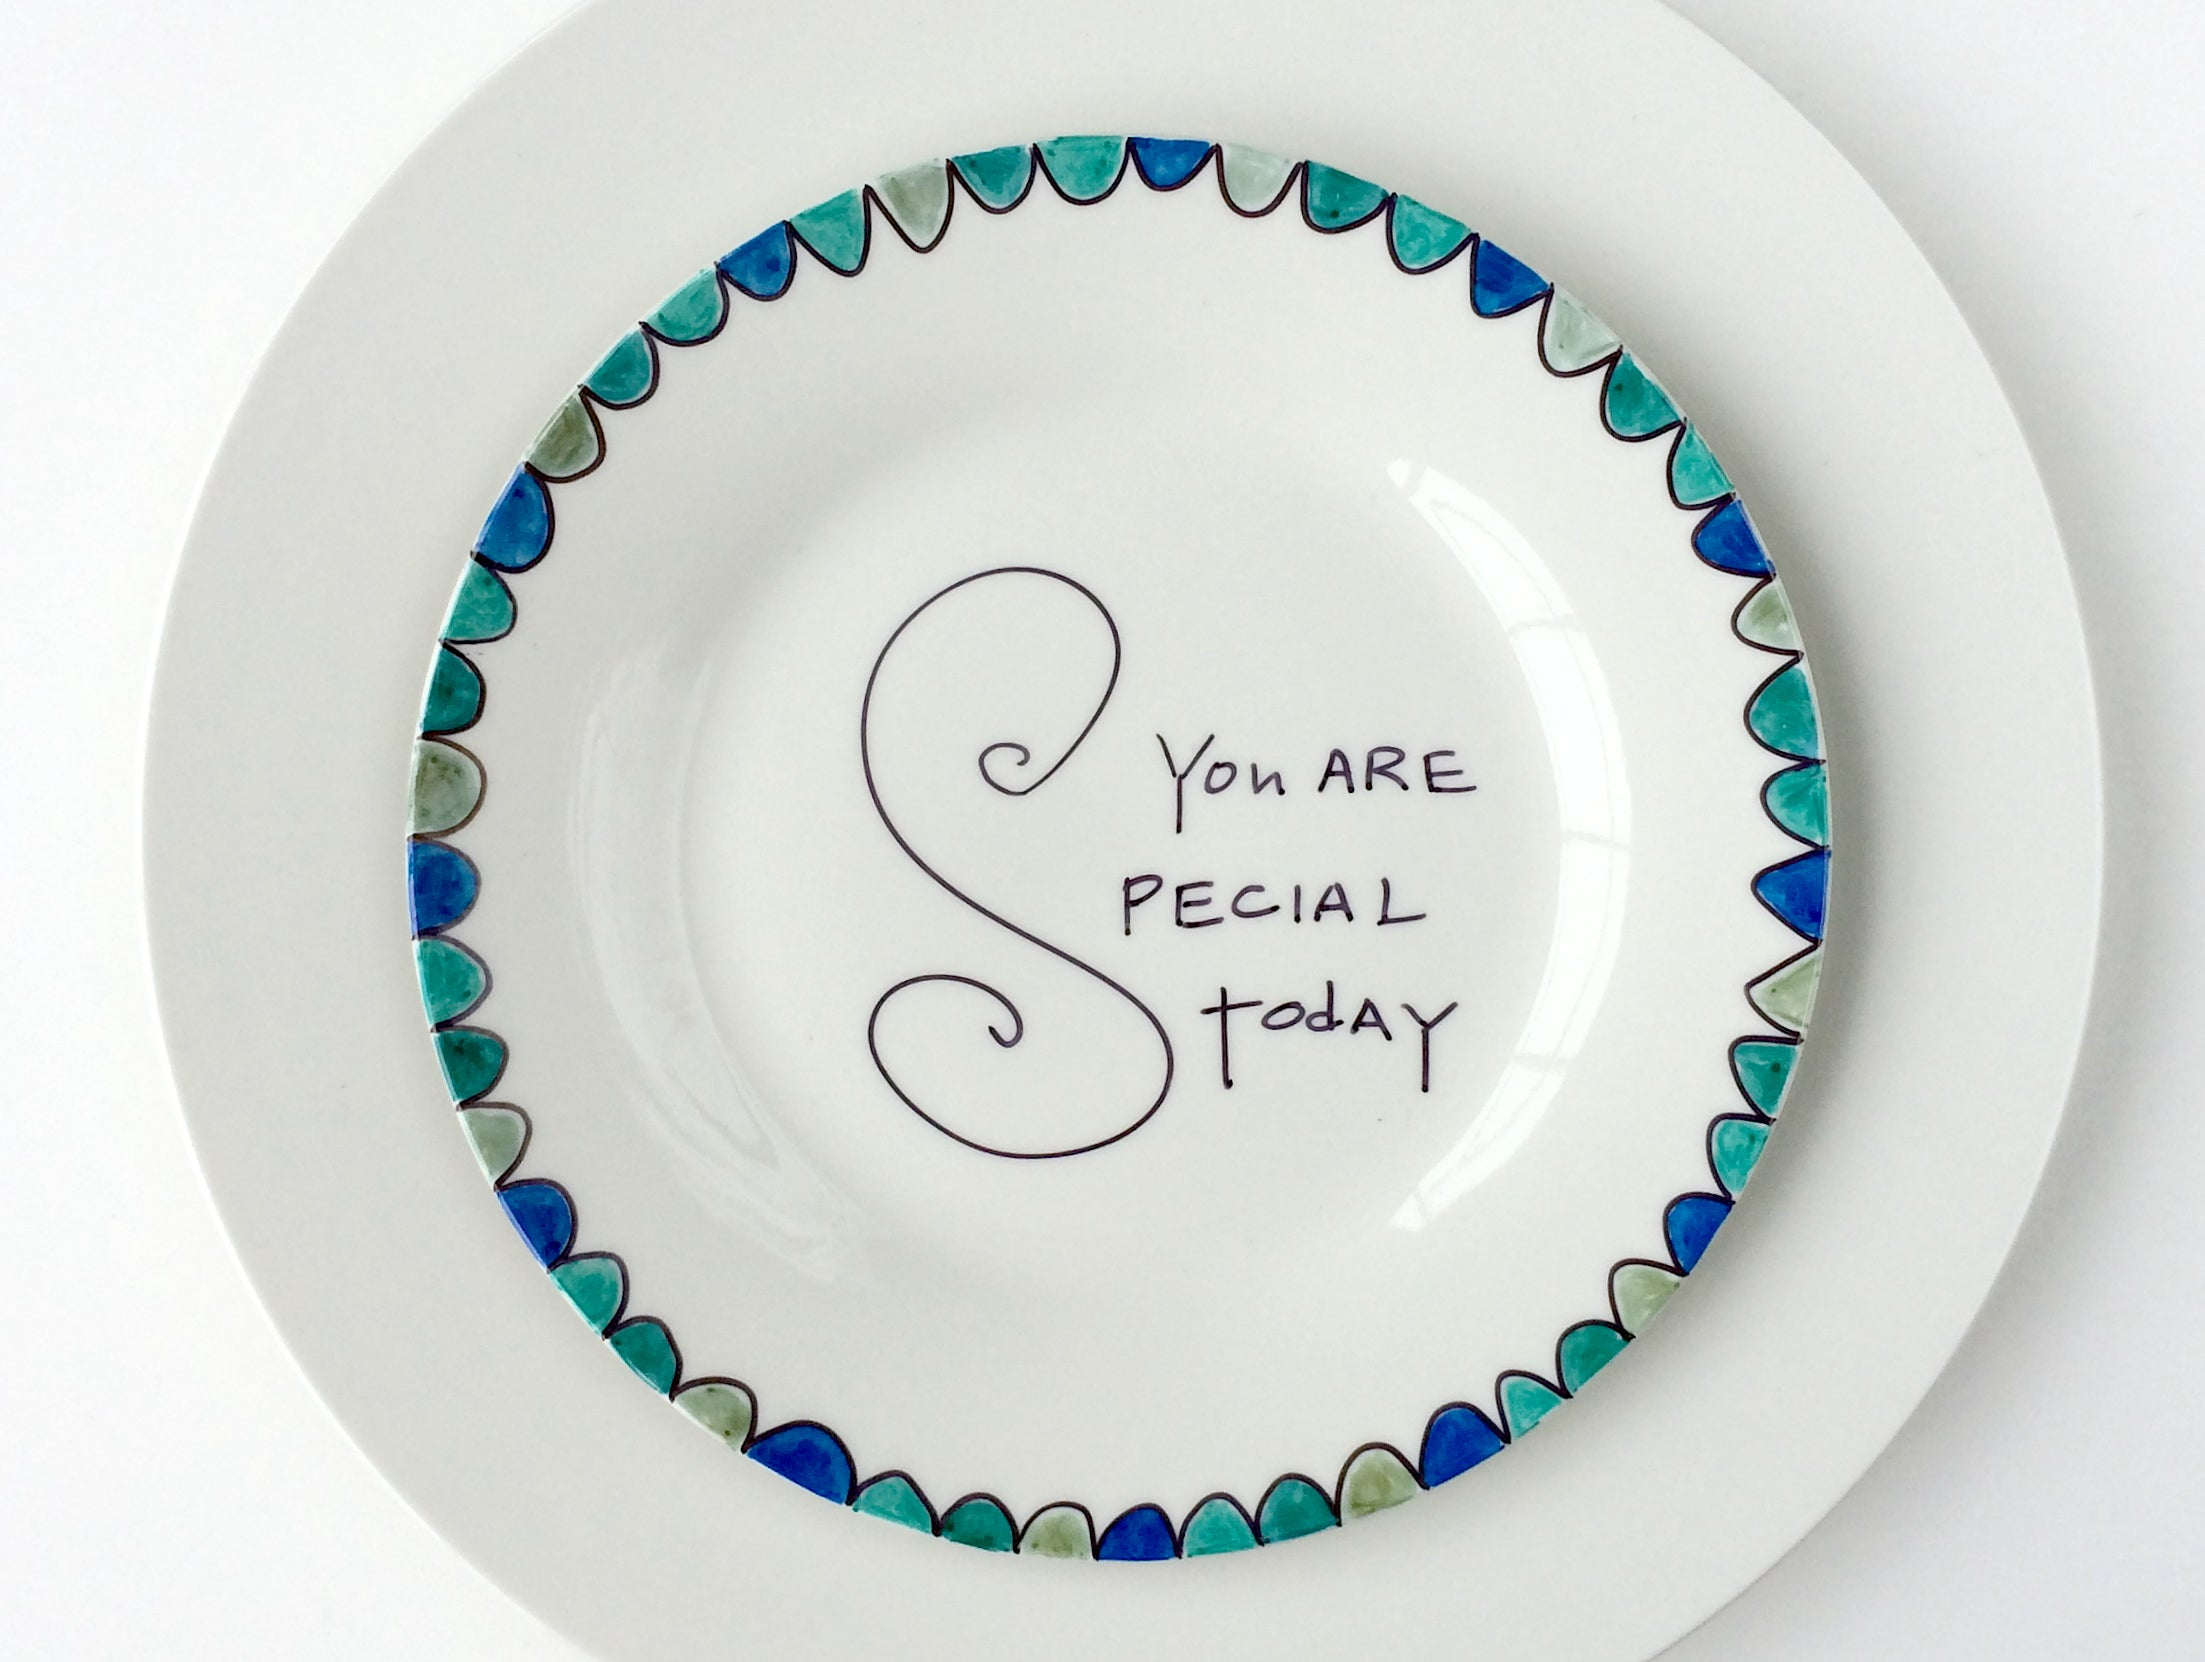 Click through to try my easy You Are Special Today plate for Father's Day gift giving | Father's Day | SatsumaDesigns.com #fathersday #giftsforhim